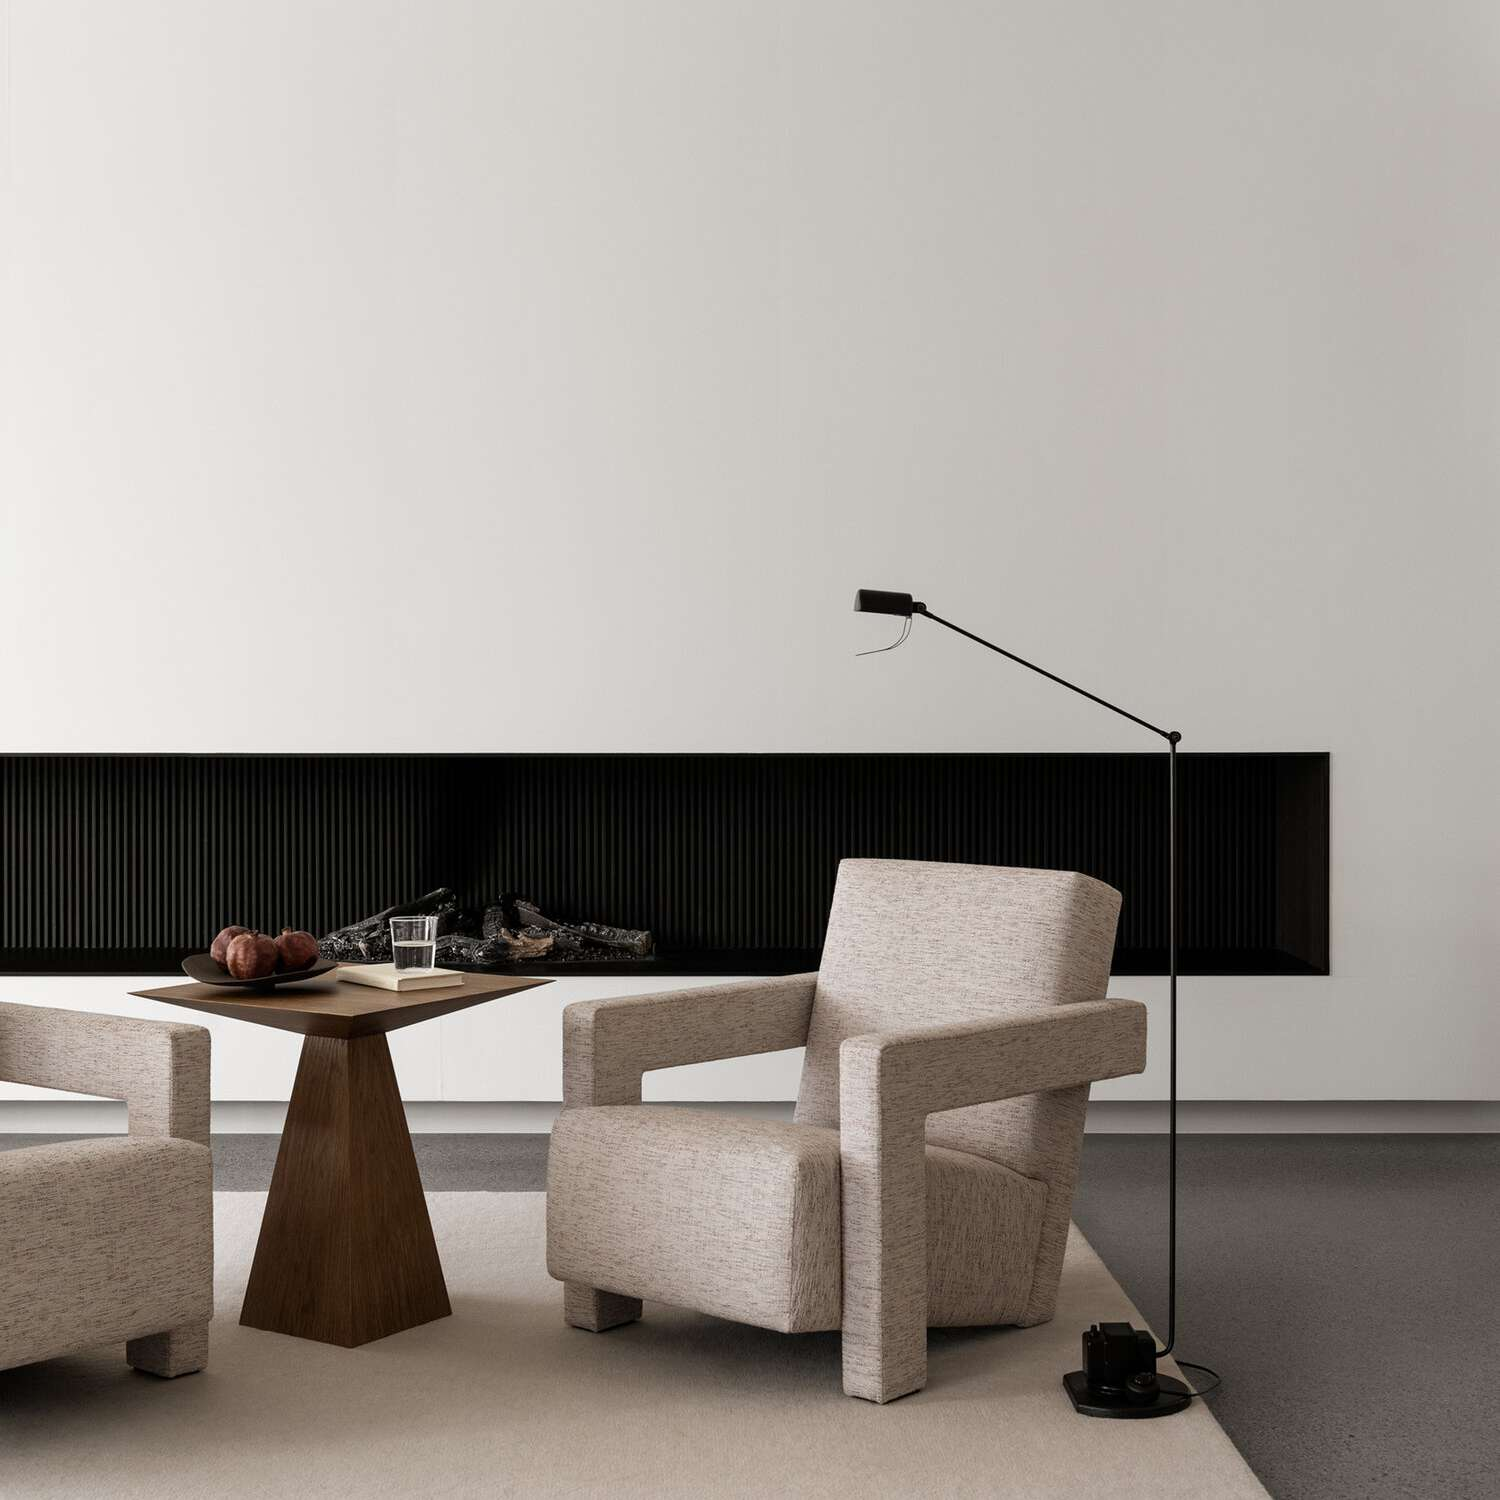 A living room with sleek furniture and cement floors adorned with a rug